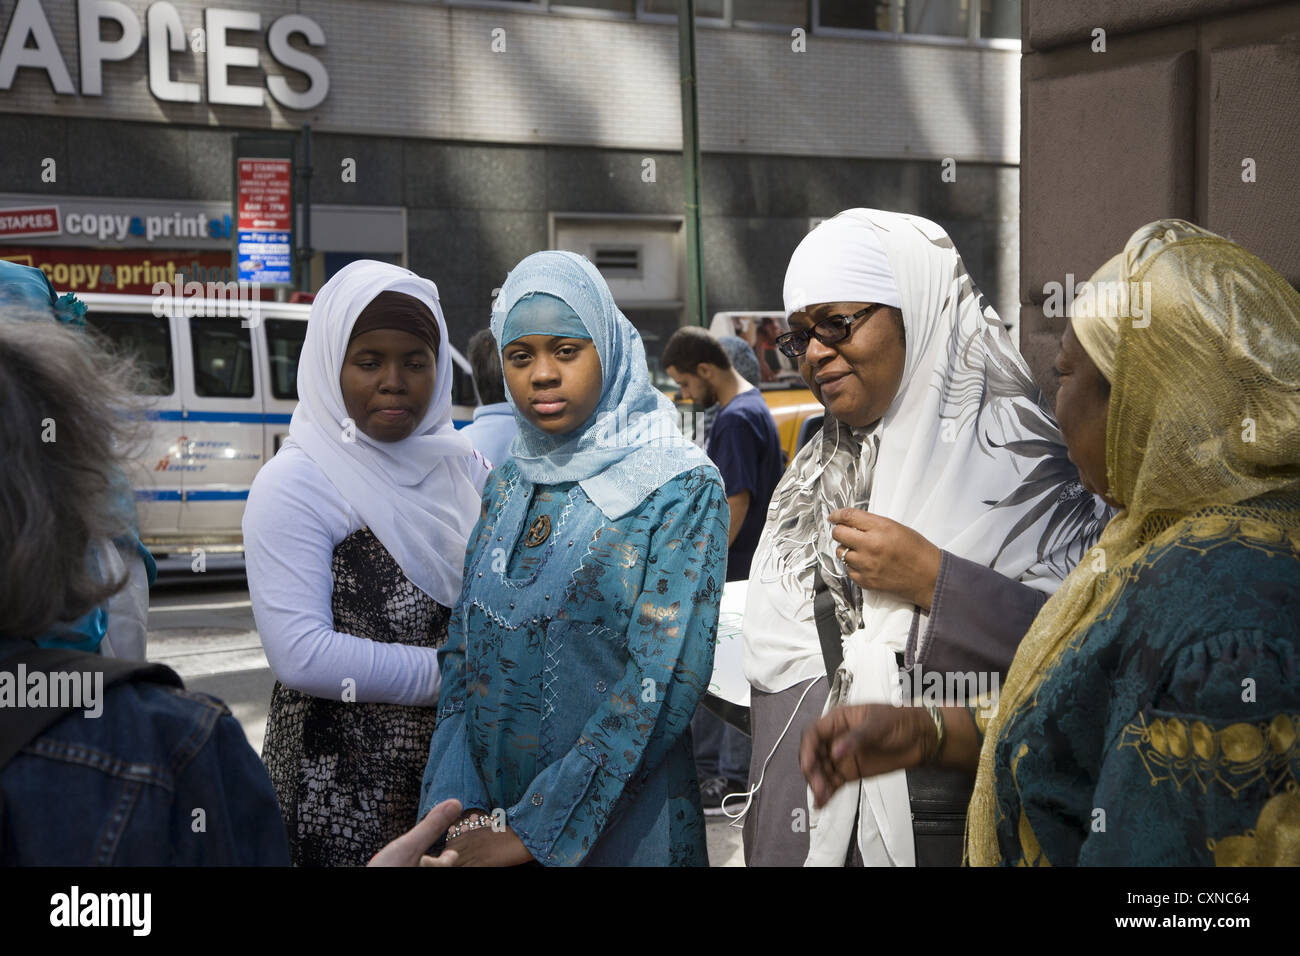 Annual Muslim American Day Parade on Madison Avenue in New York City. Traditionally dressed women wait for the parade - Stock Image